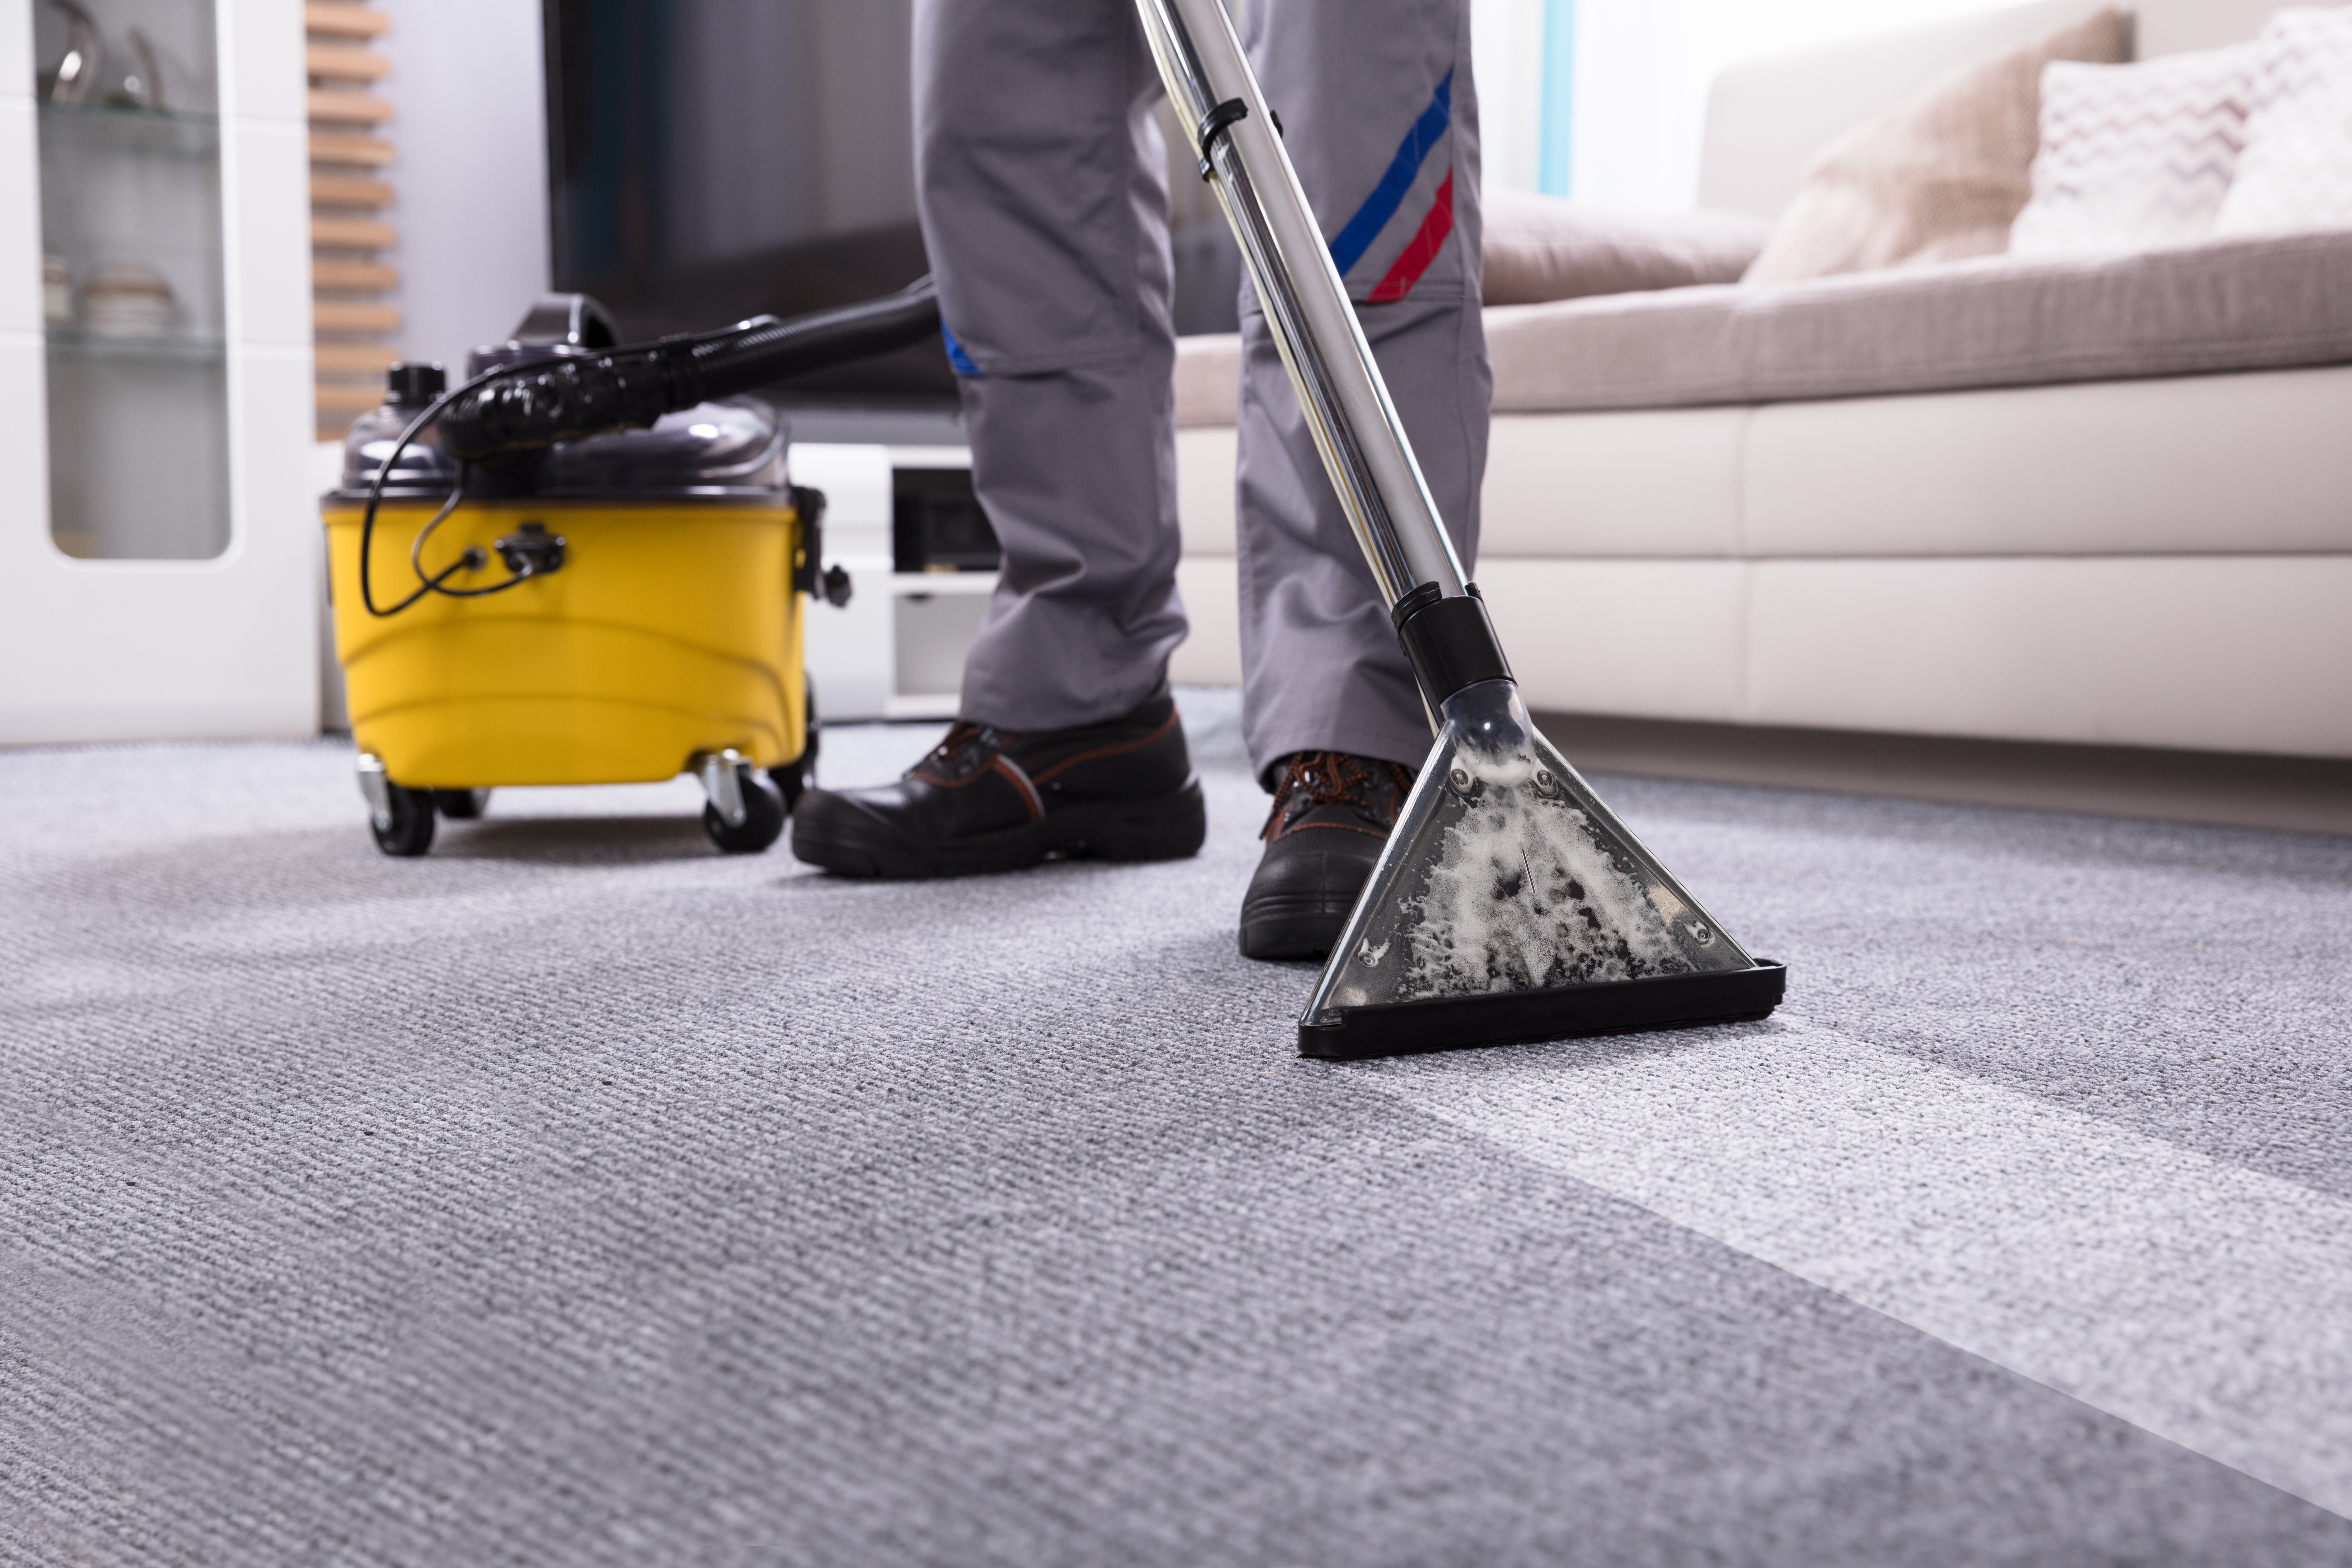 Tips On Using A Rug Doctor Really Dirty Carpet Home Guides Sf Gate